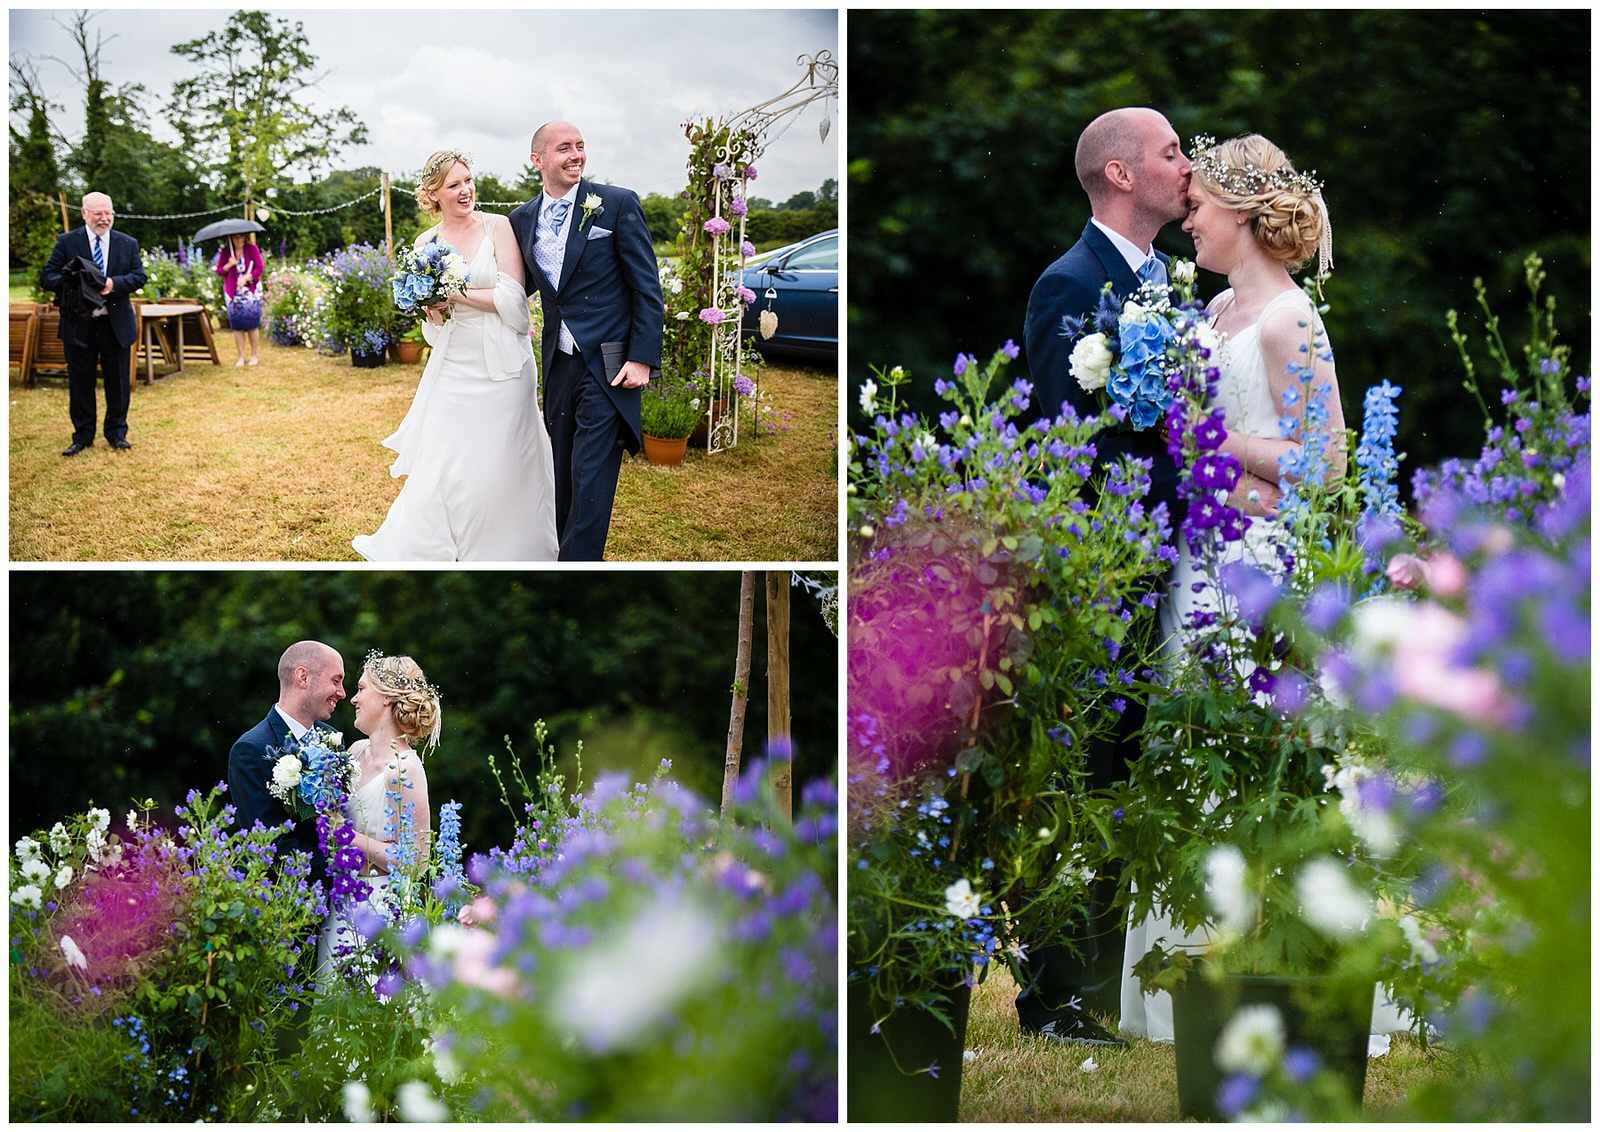 Homegrown flowers with bride and groom marquee wedding - Shropshire wedding photographer